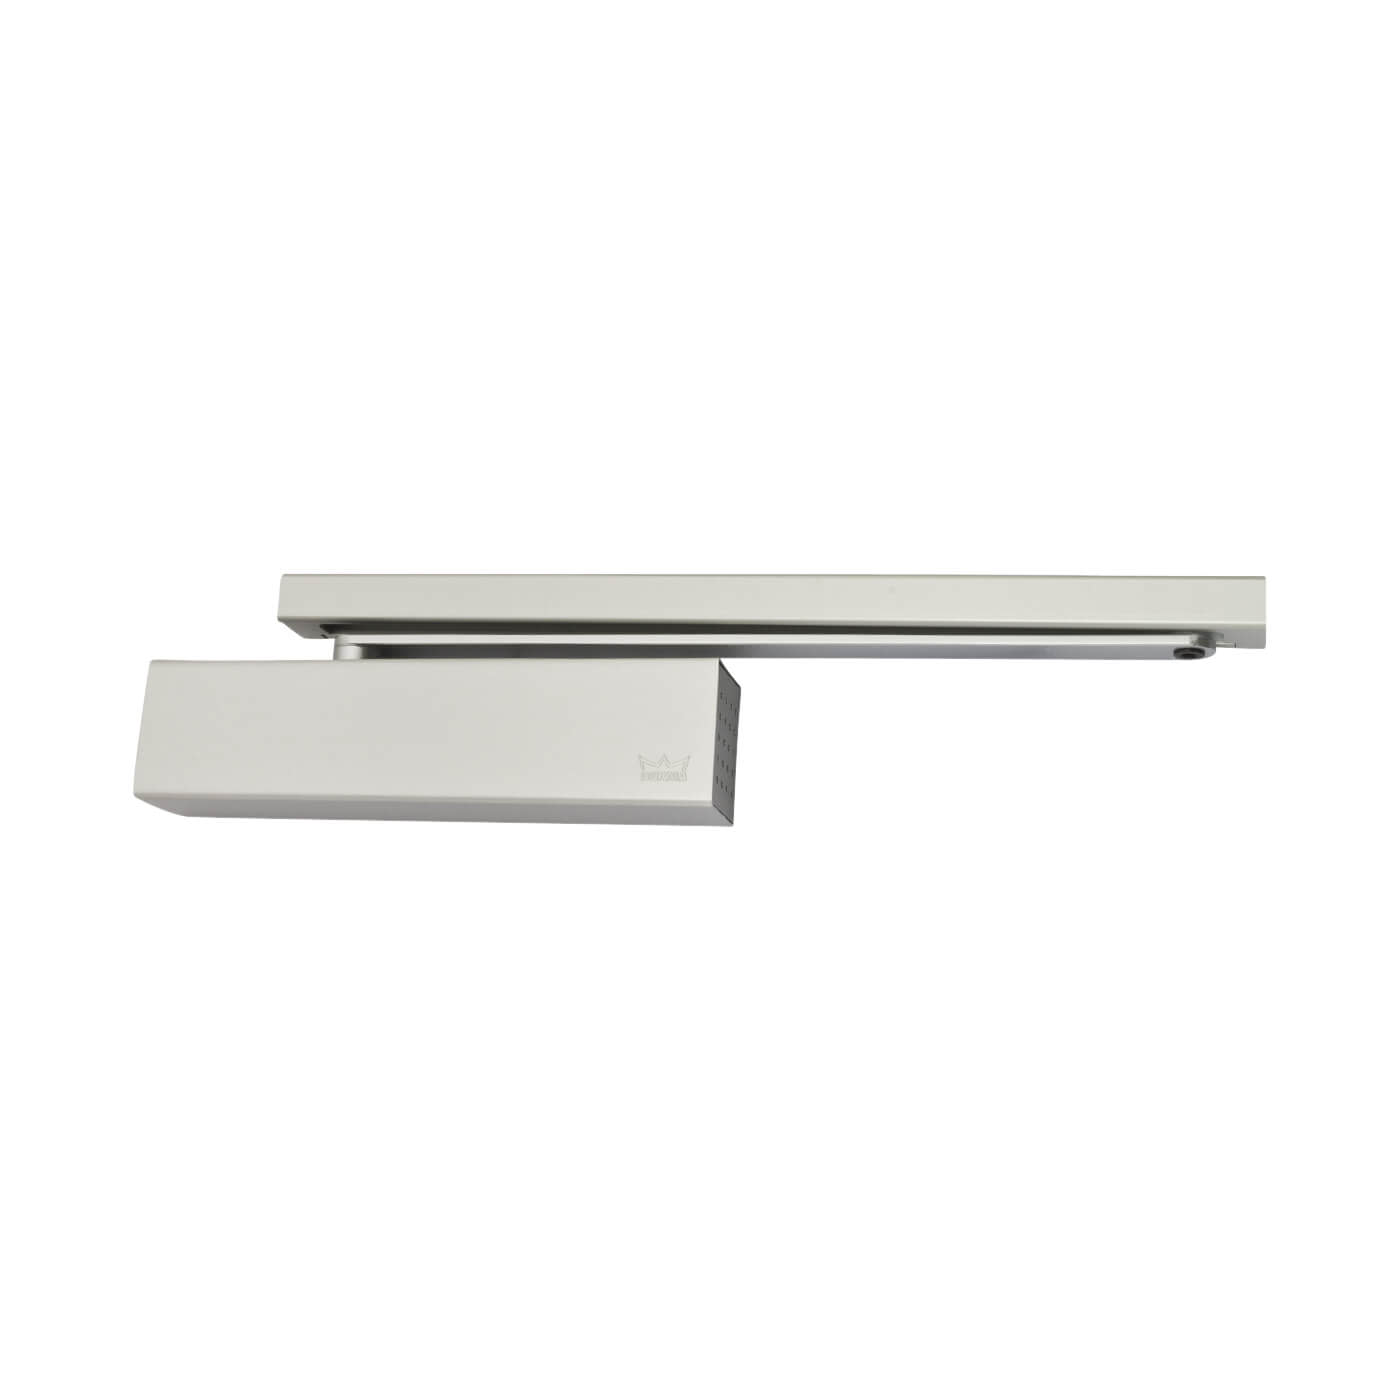 DORMA TS92 Cam Action Door Closer - Pull Side Mounting - Silver)